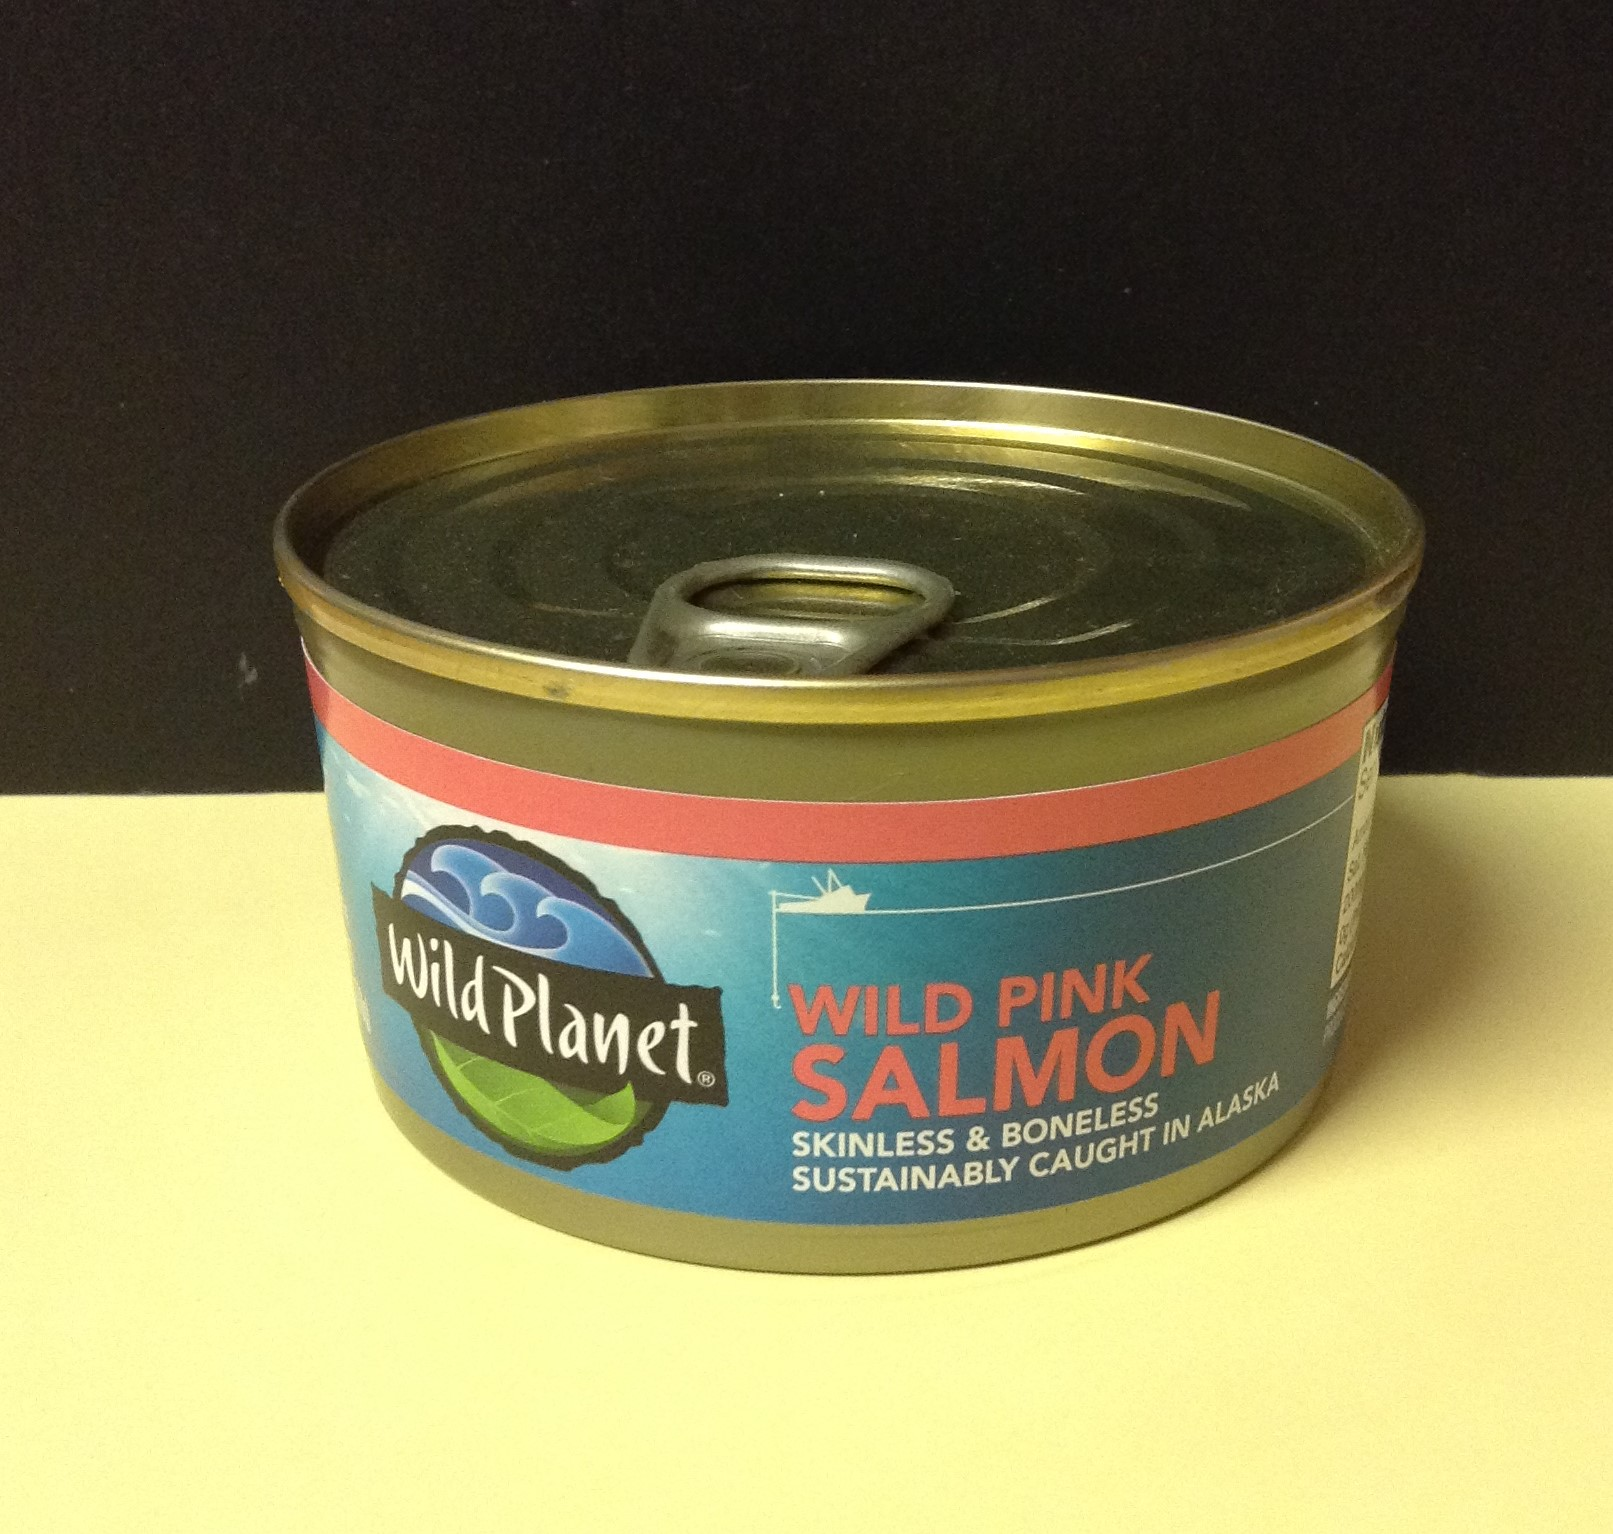 WILD PLANET Canned Wild Pink Salmon